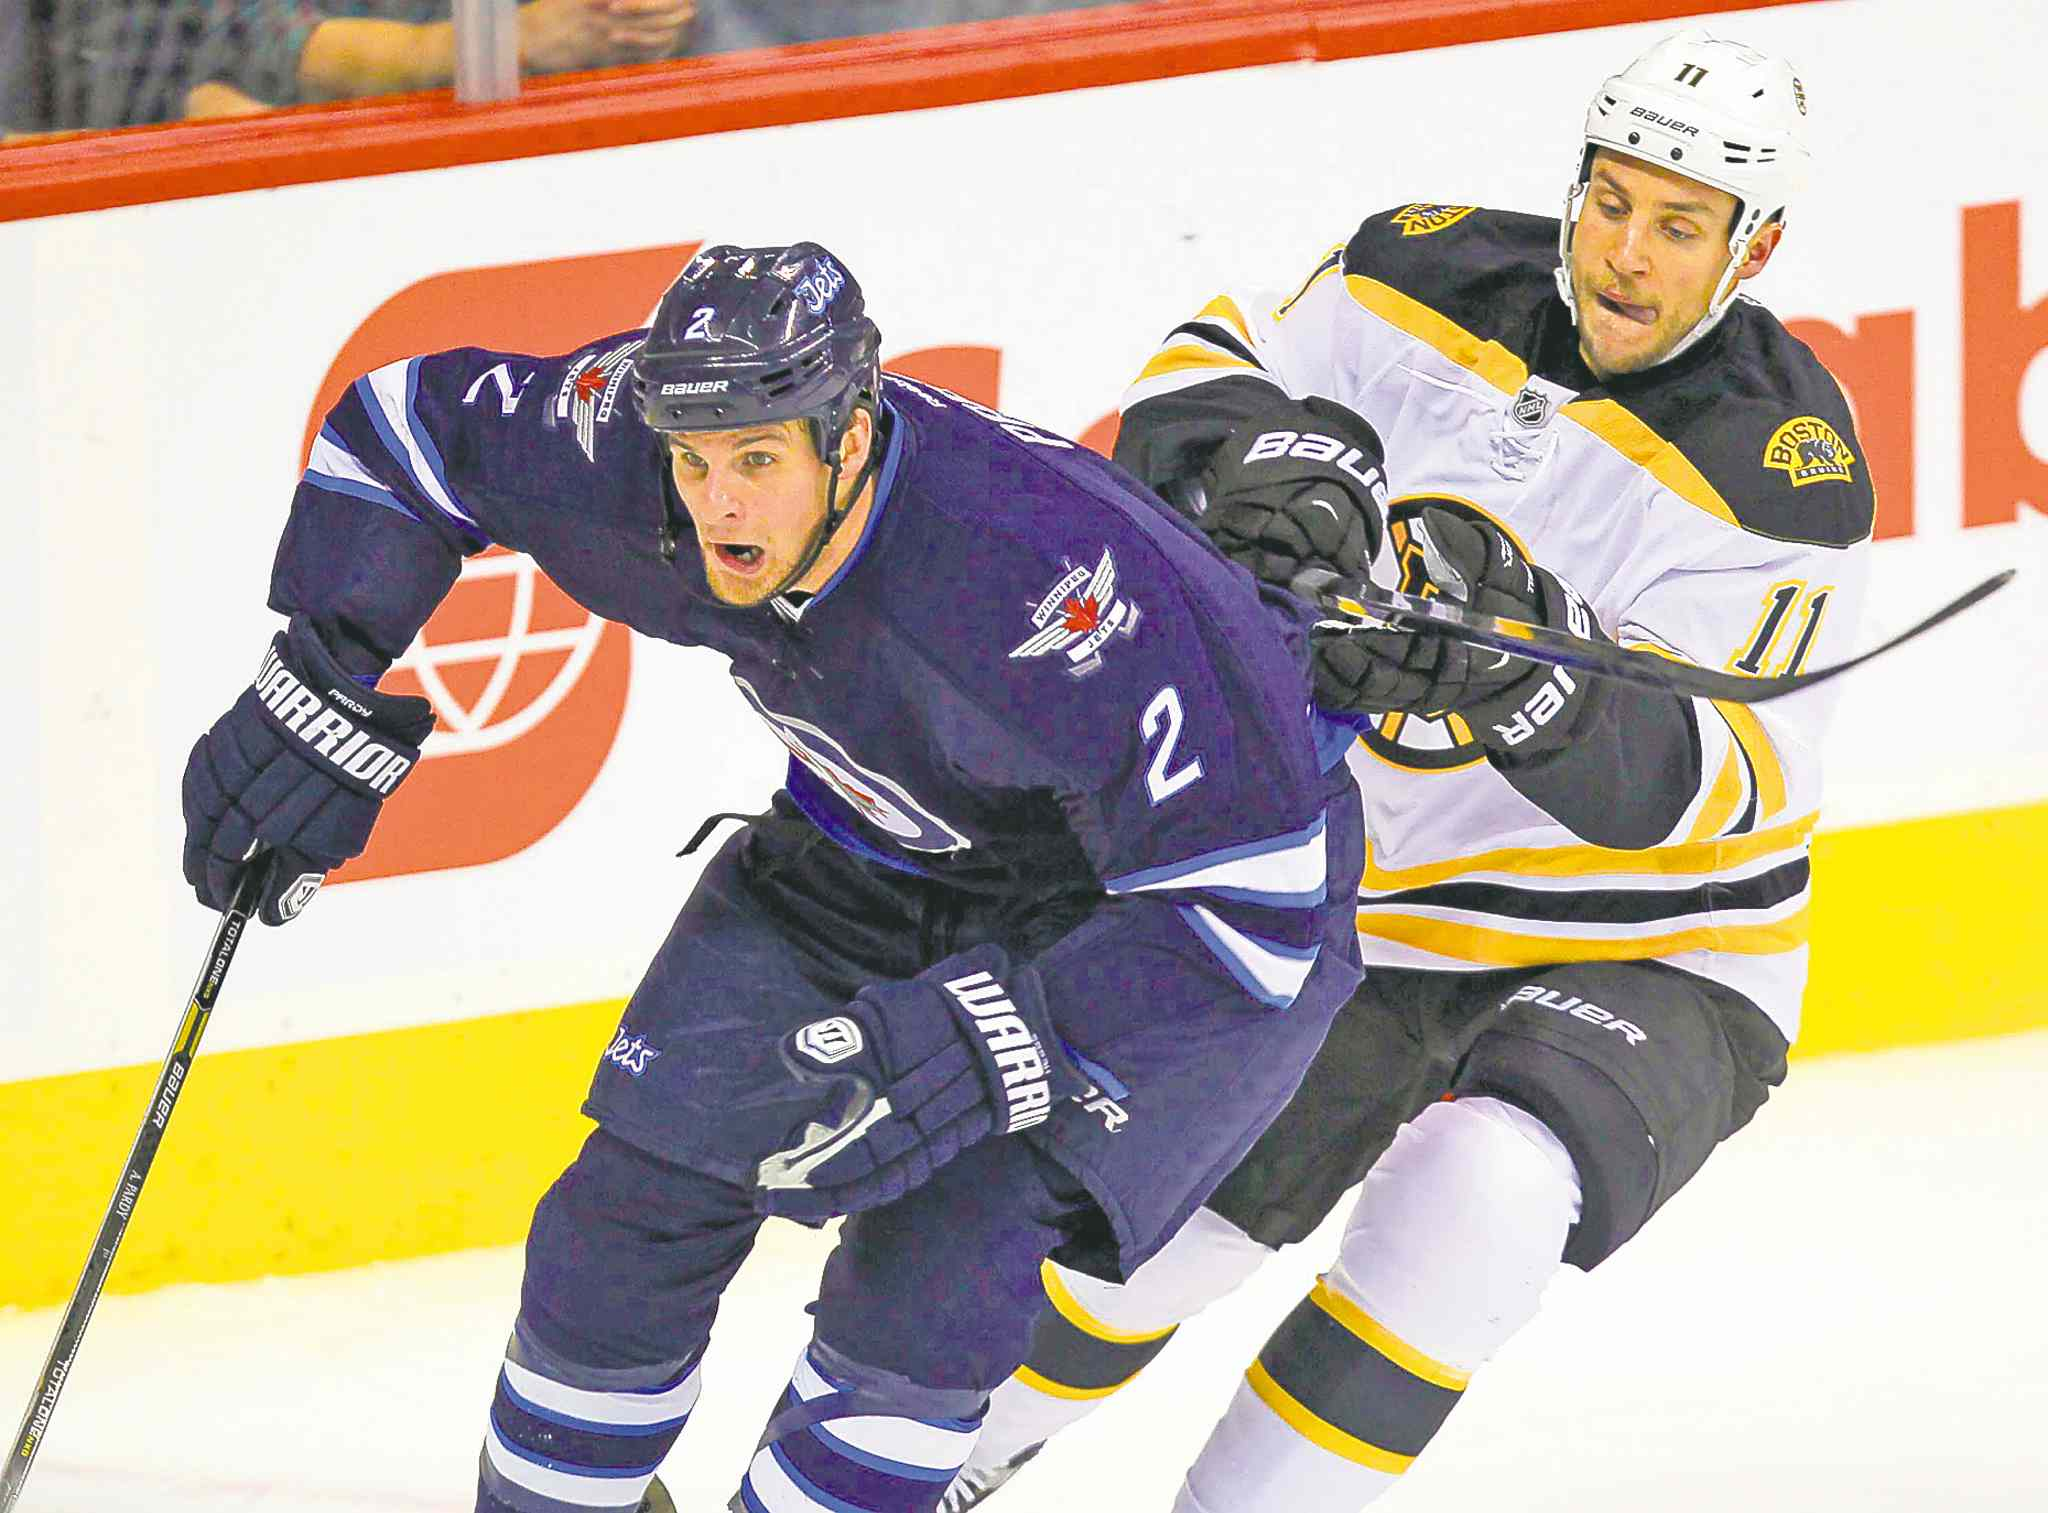 Winnipeg Jets defenceman Adam Pardy will likely be seeing more ice now that Paul Postma is on the shelf for the foreseeable future.